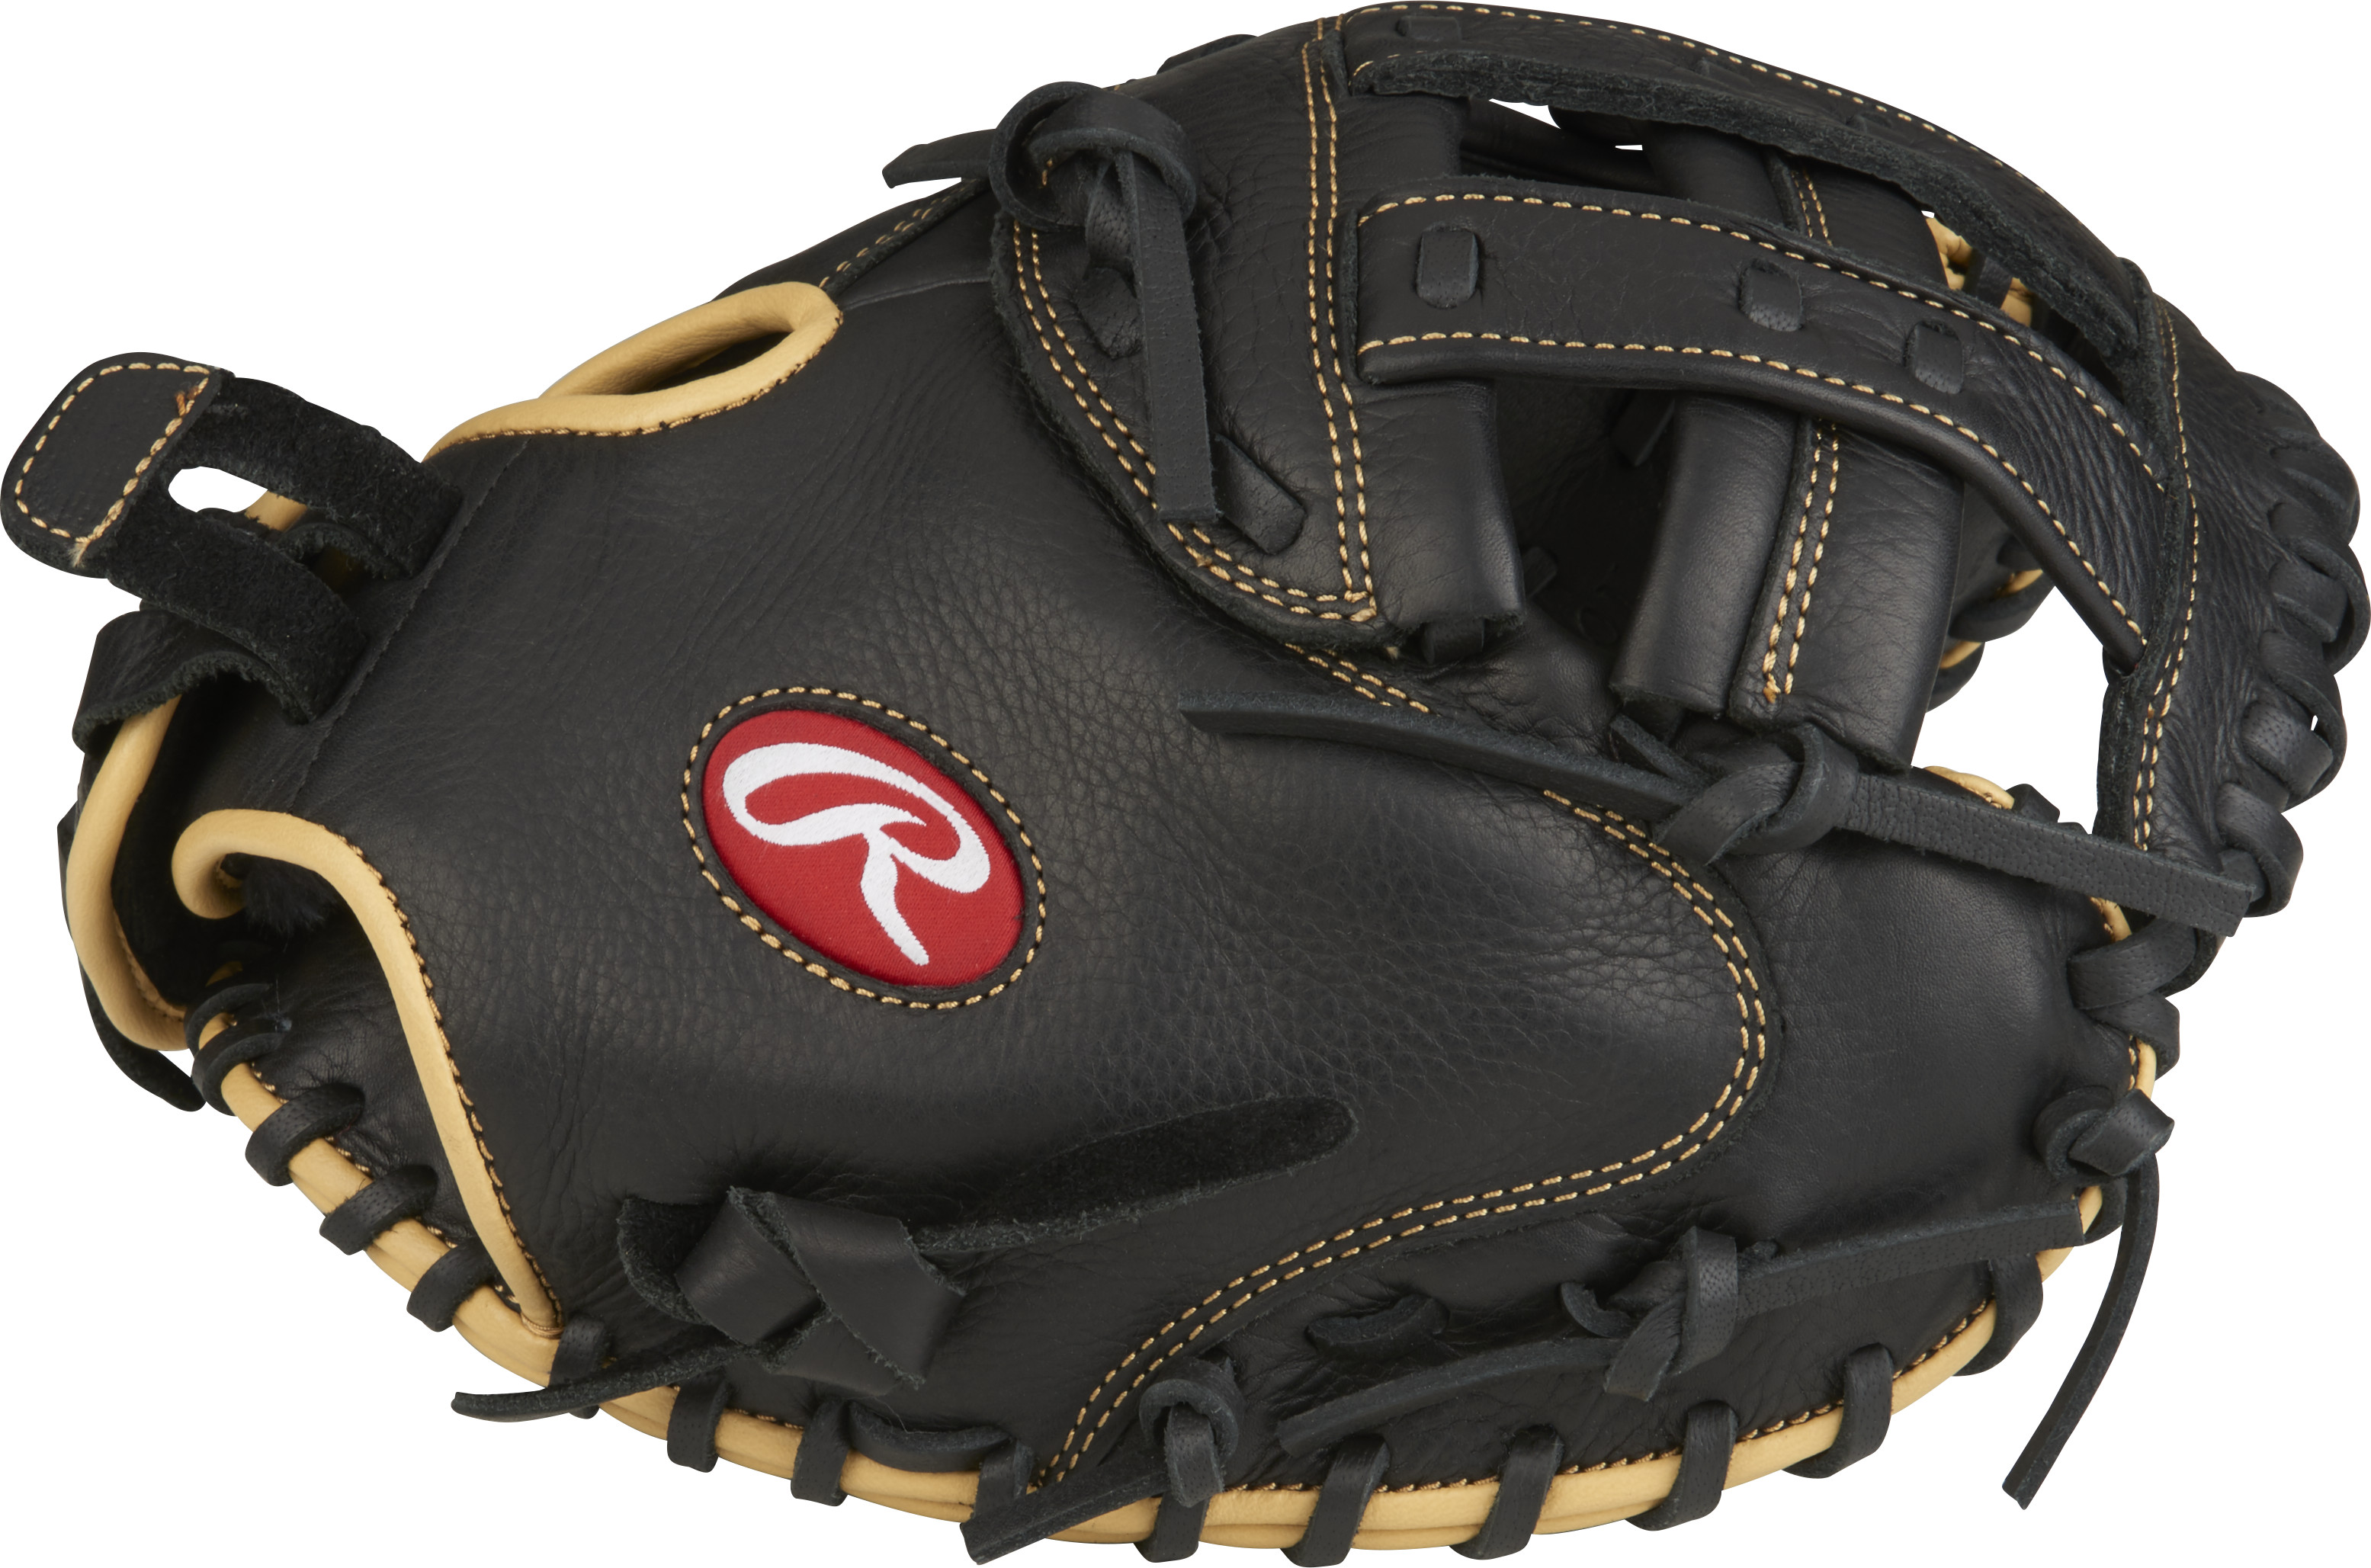 http://www.bestbatdeals.com/images/gloves/rawlings/RSOCM33BCC-3.jpg